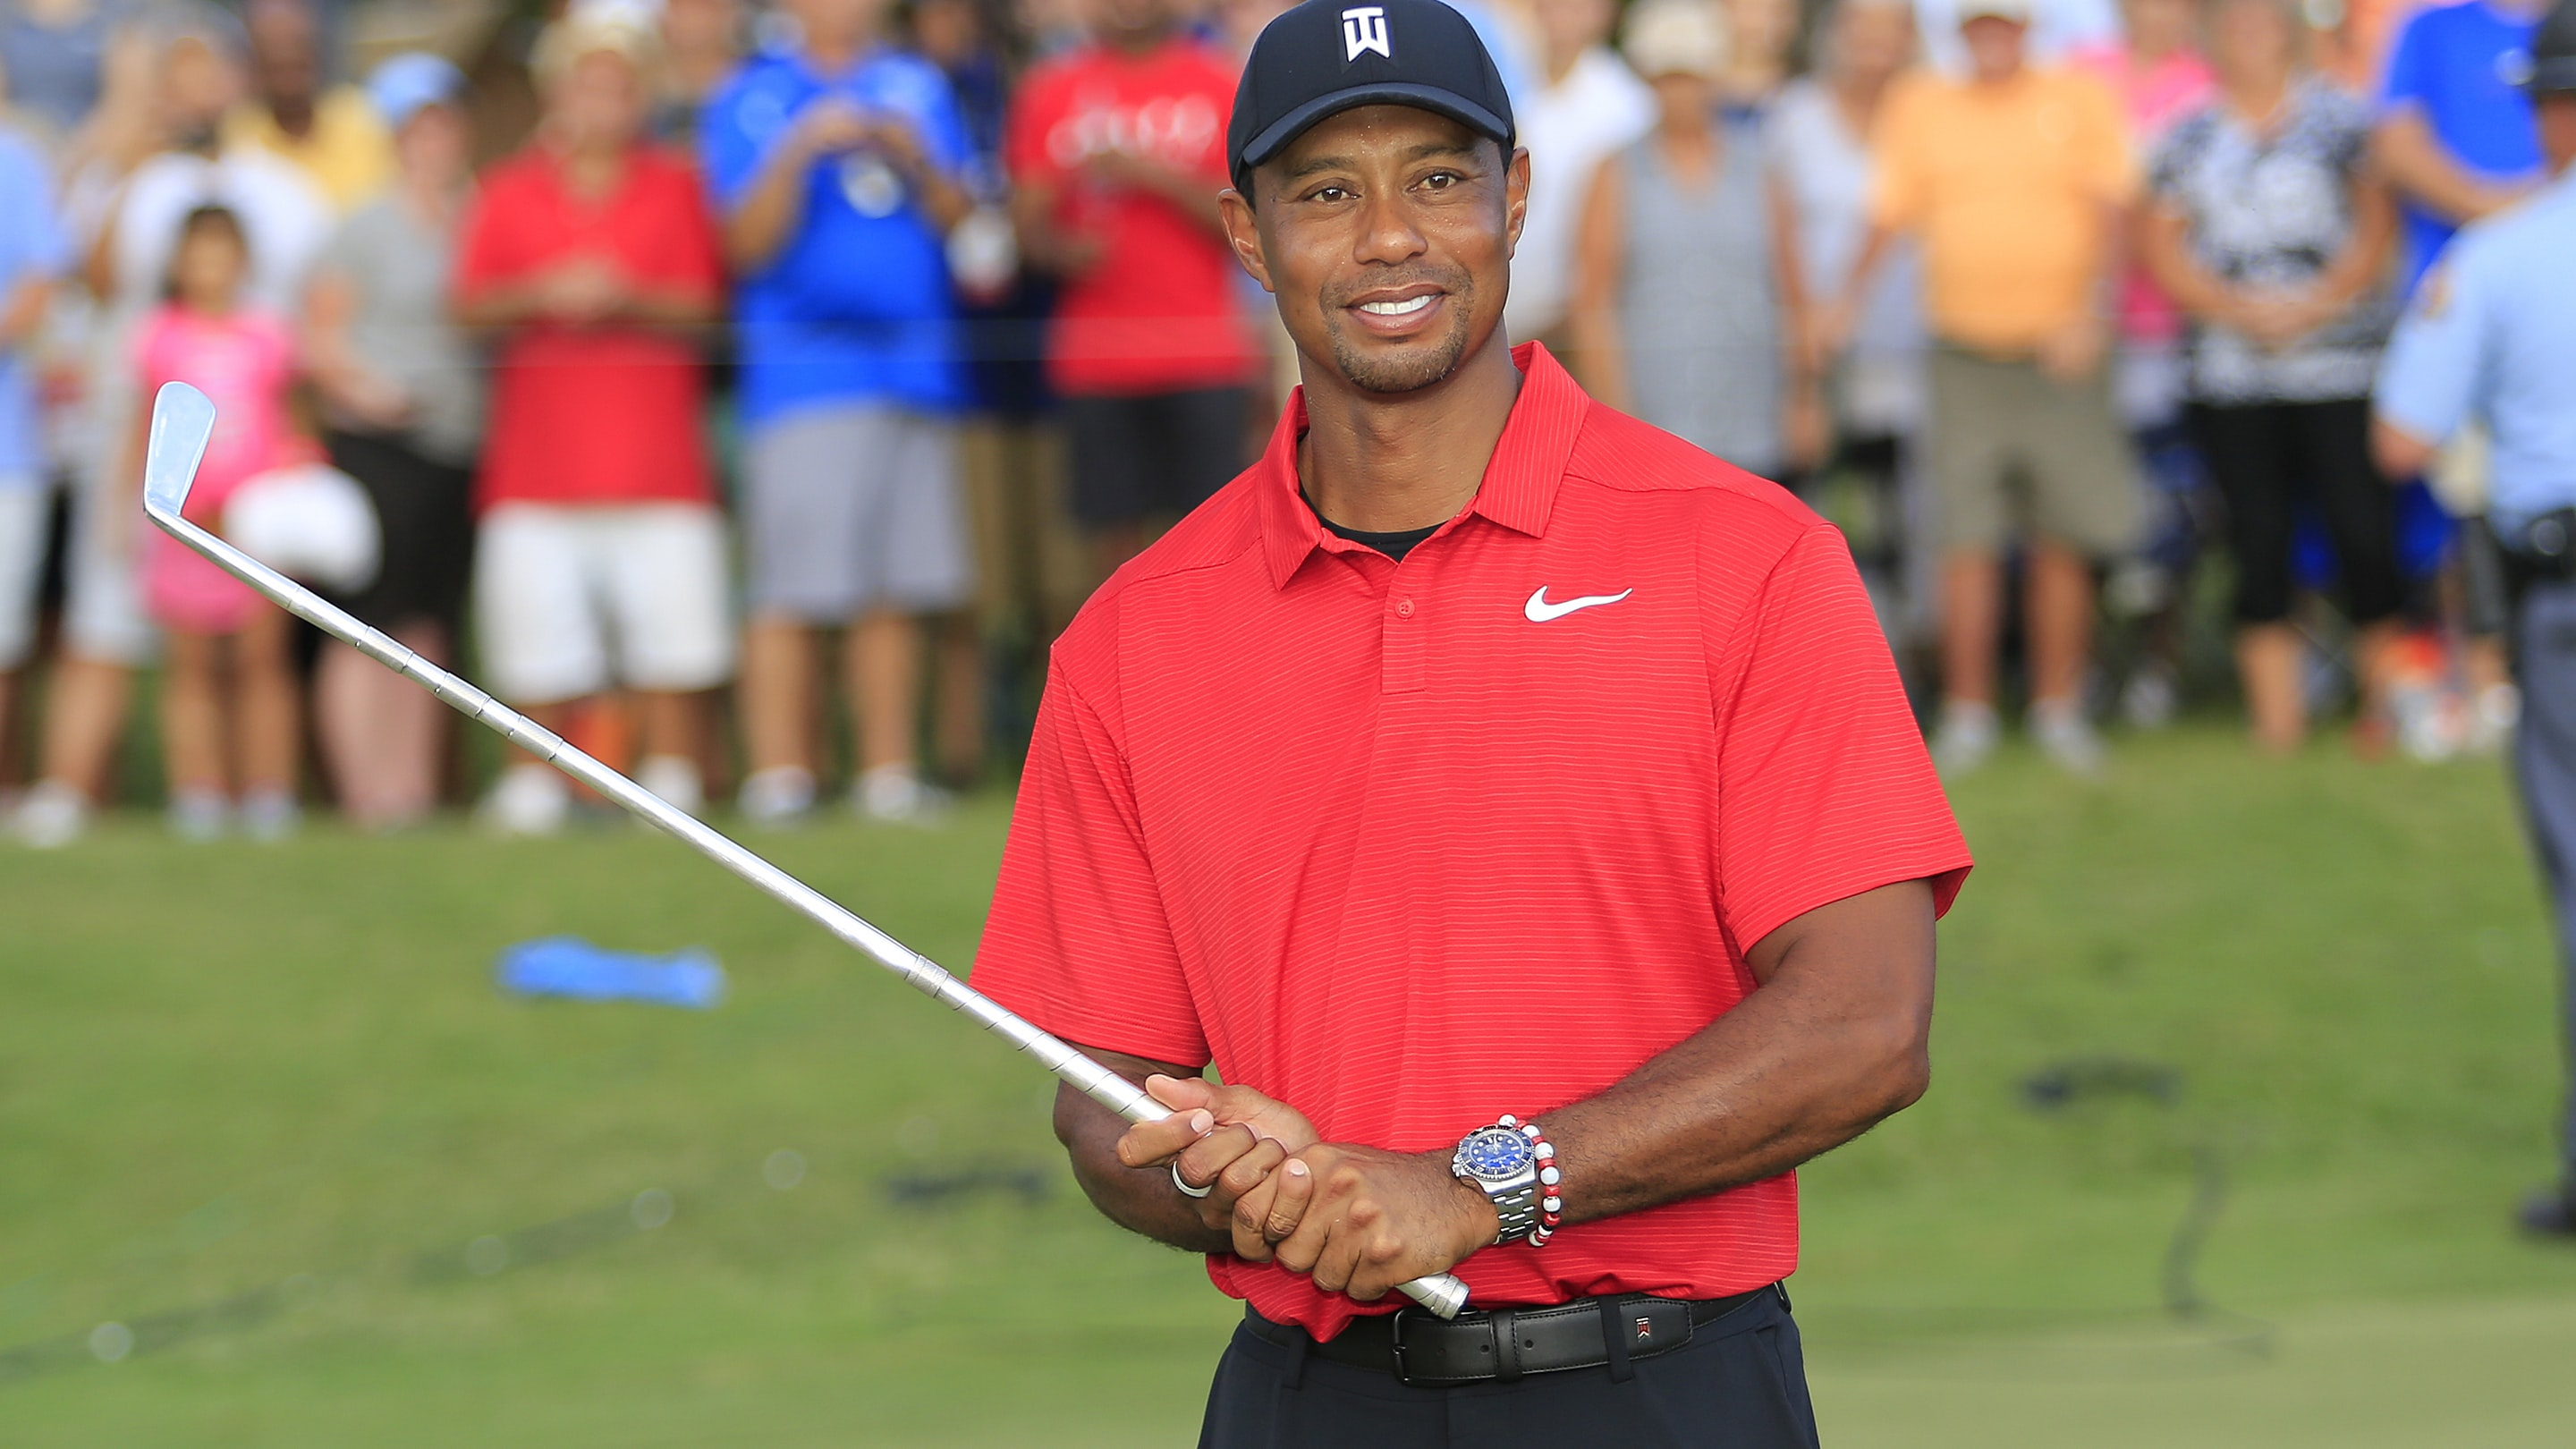 Auto Draft  Watch Spotting: Tiger Woods Wins The 2018 PGA Tour Championship Wearing a Rolex Deepsea tiger hodinkee